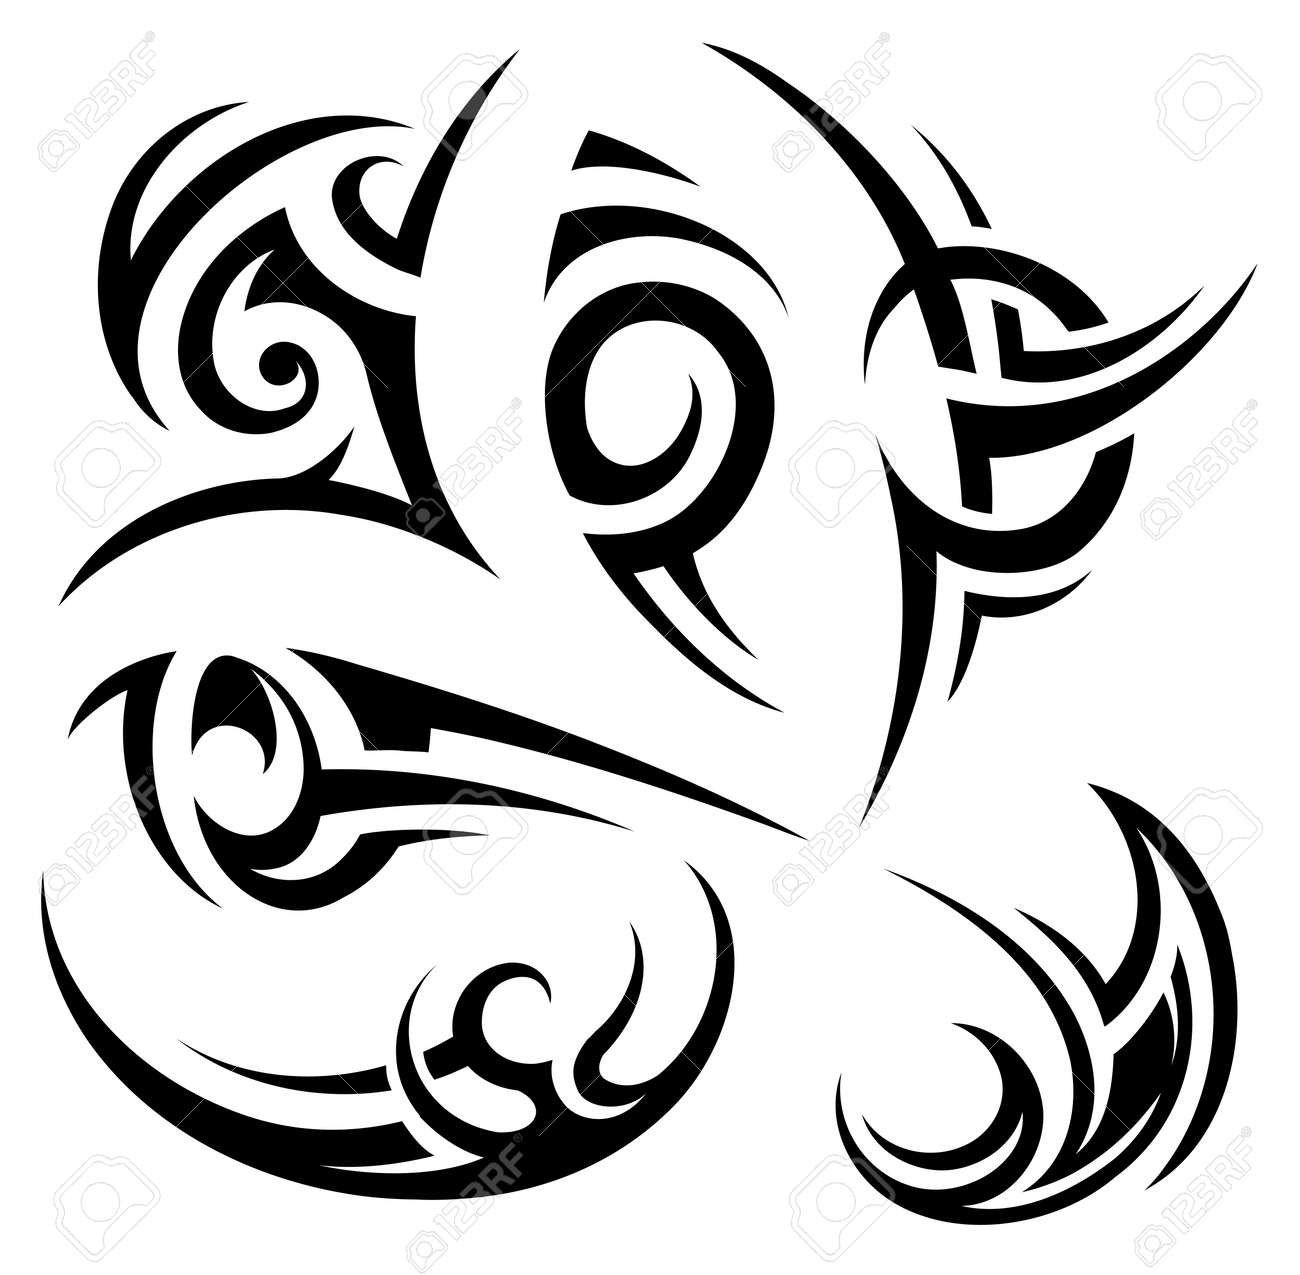 Set of tribal art tattoo shapes in Gothic style - 63420745